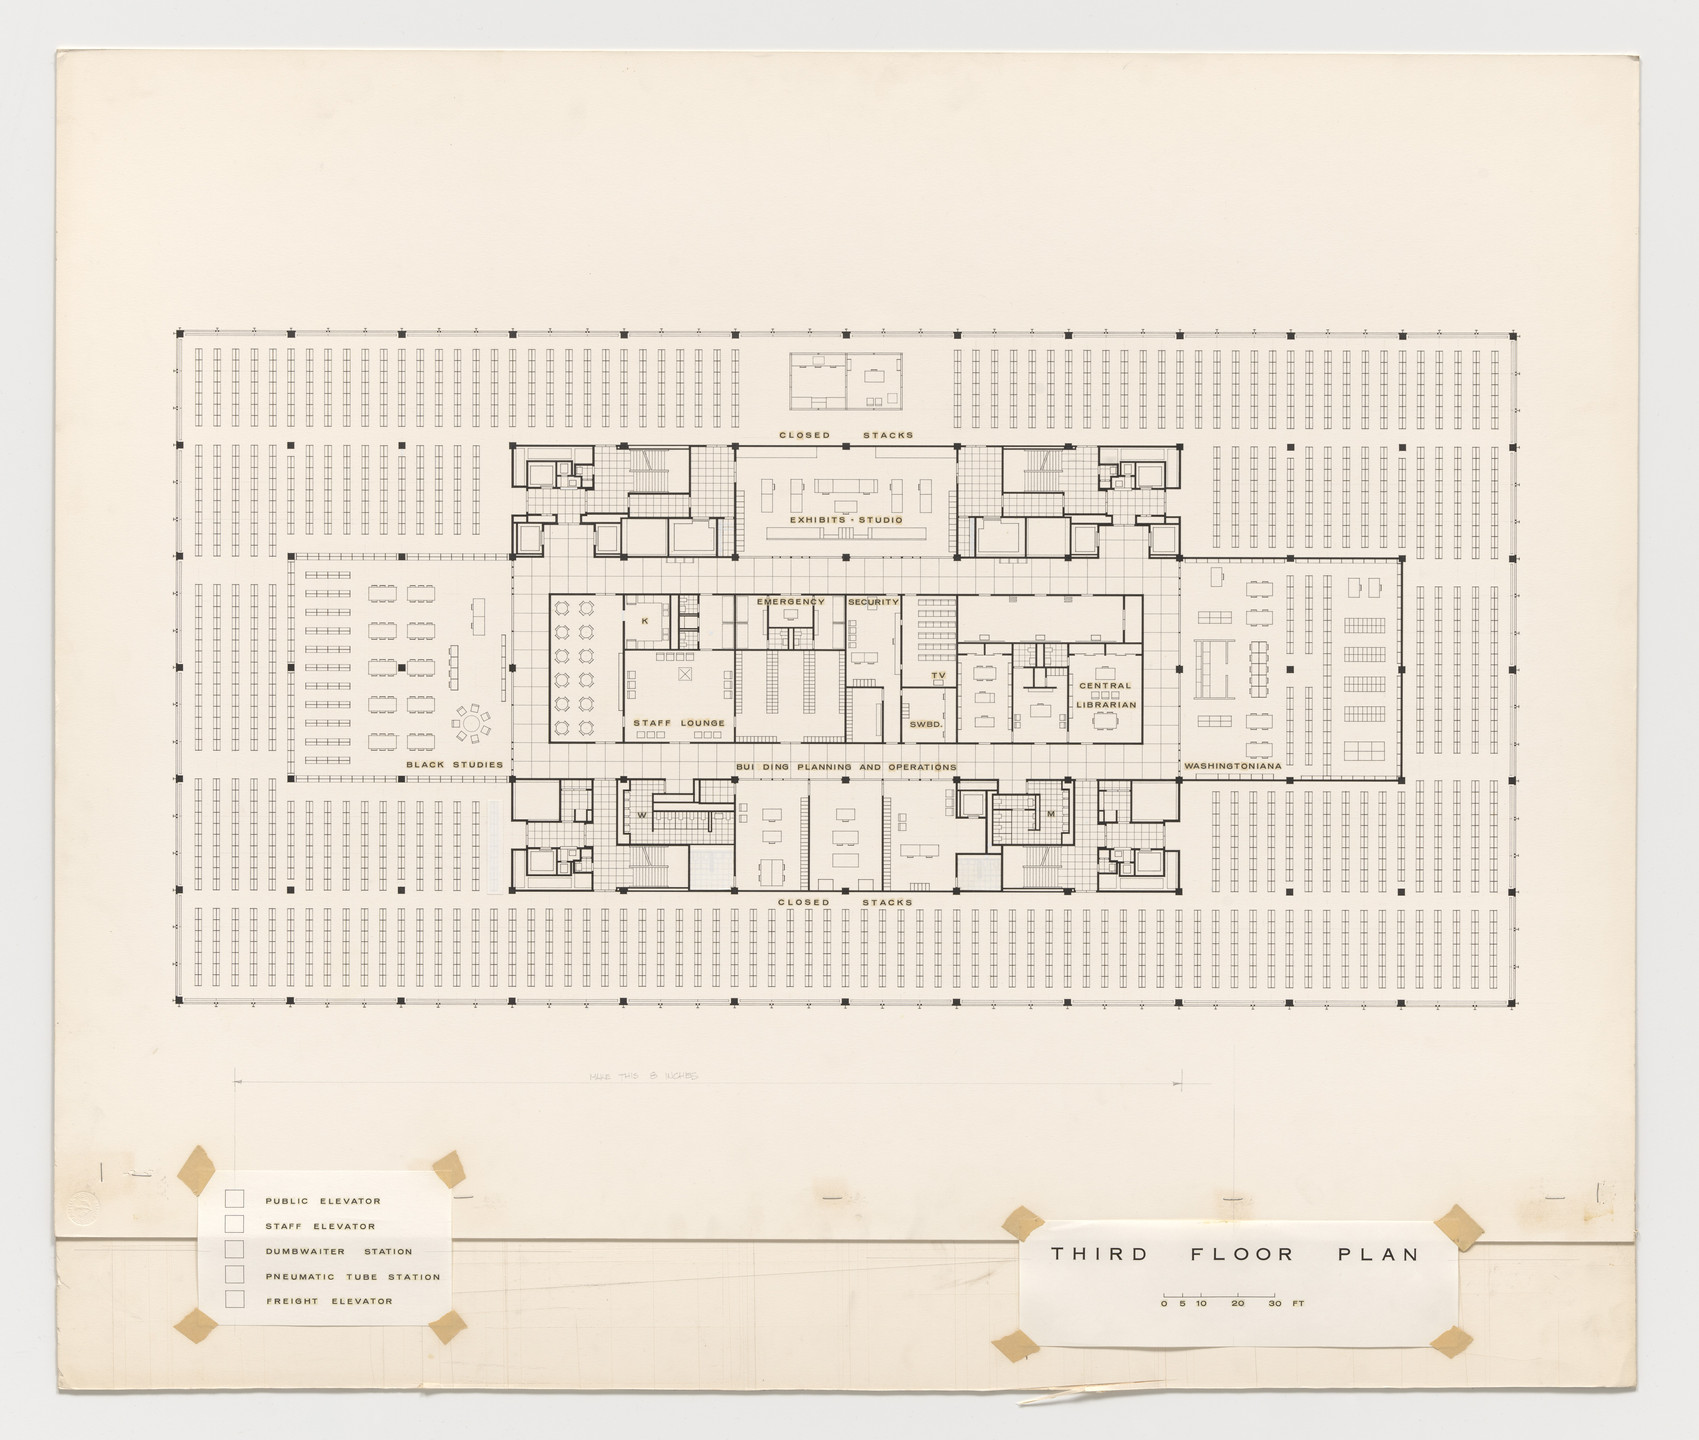 Ludwig Mies van der Rohe. Martin Luther King Jr. Memorial Library, Washington, D.C. (Third floor plan). 1965–1968